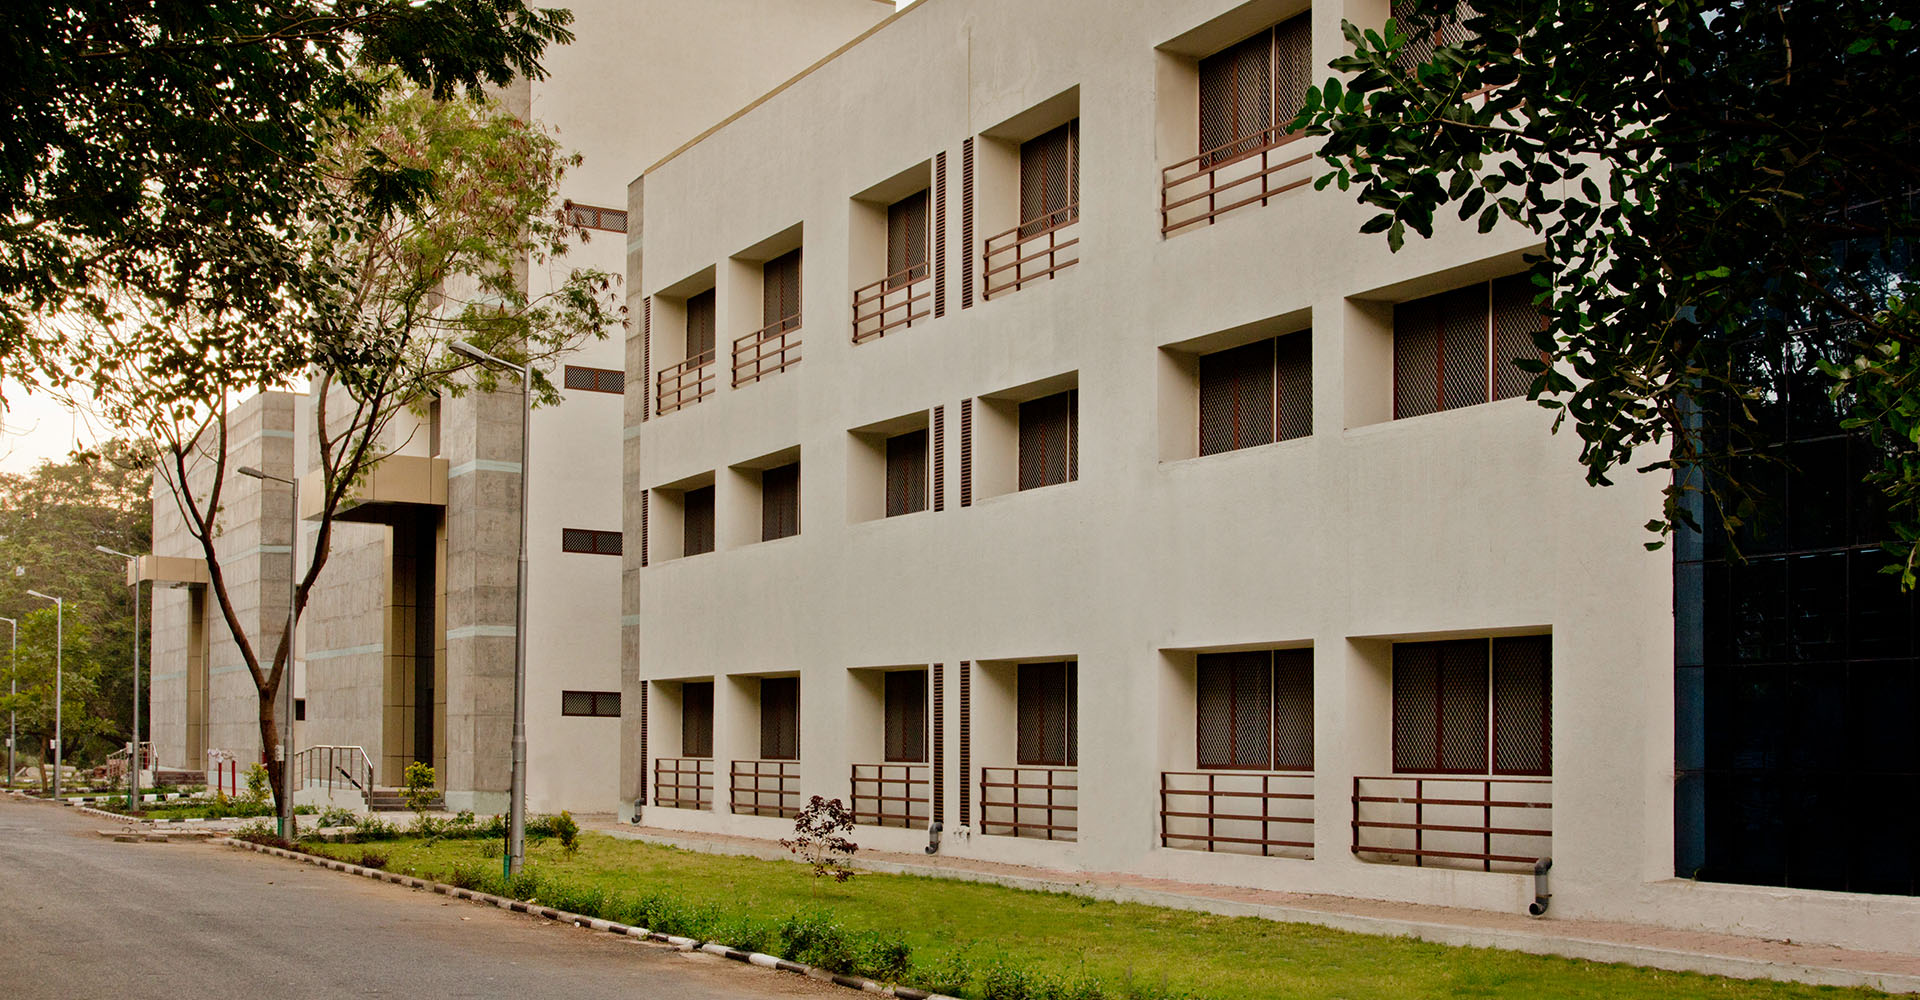 Sardar Vallabhbhai National Institute of Technology (SVNIT)-Institutional & Commercial 4